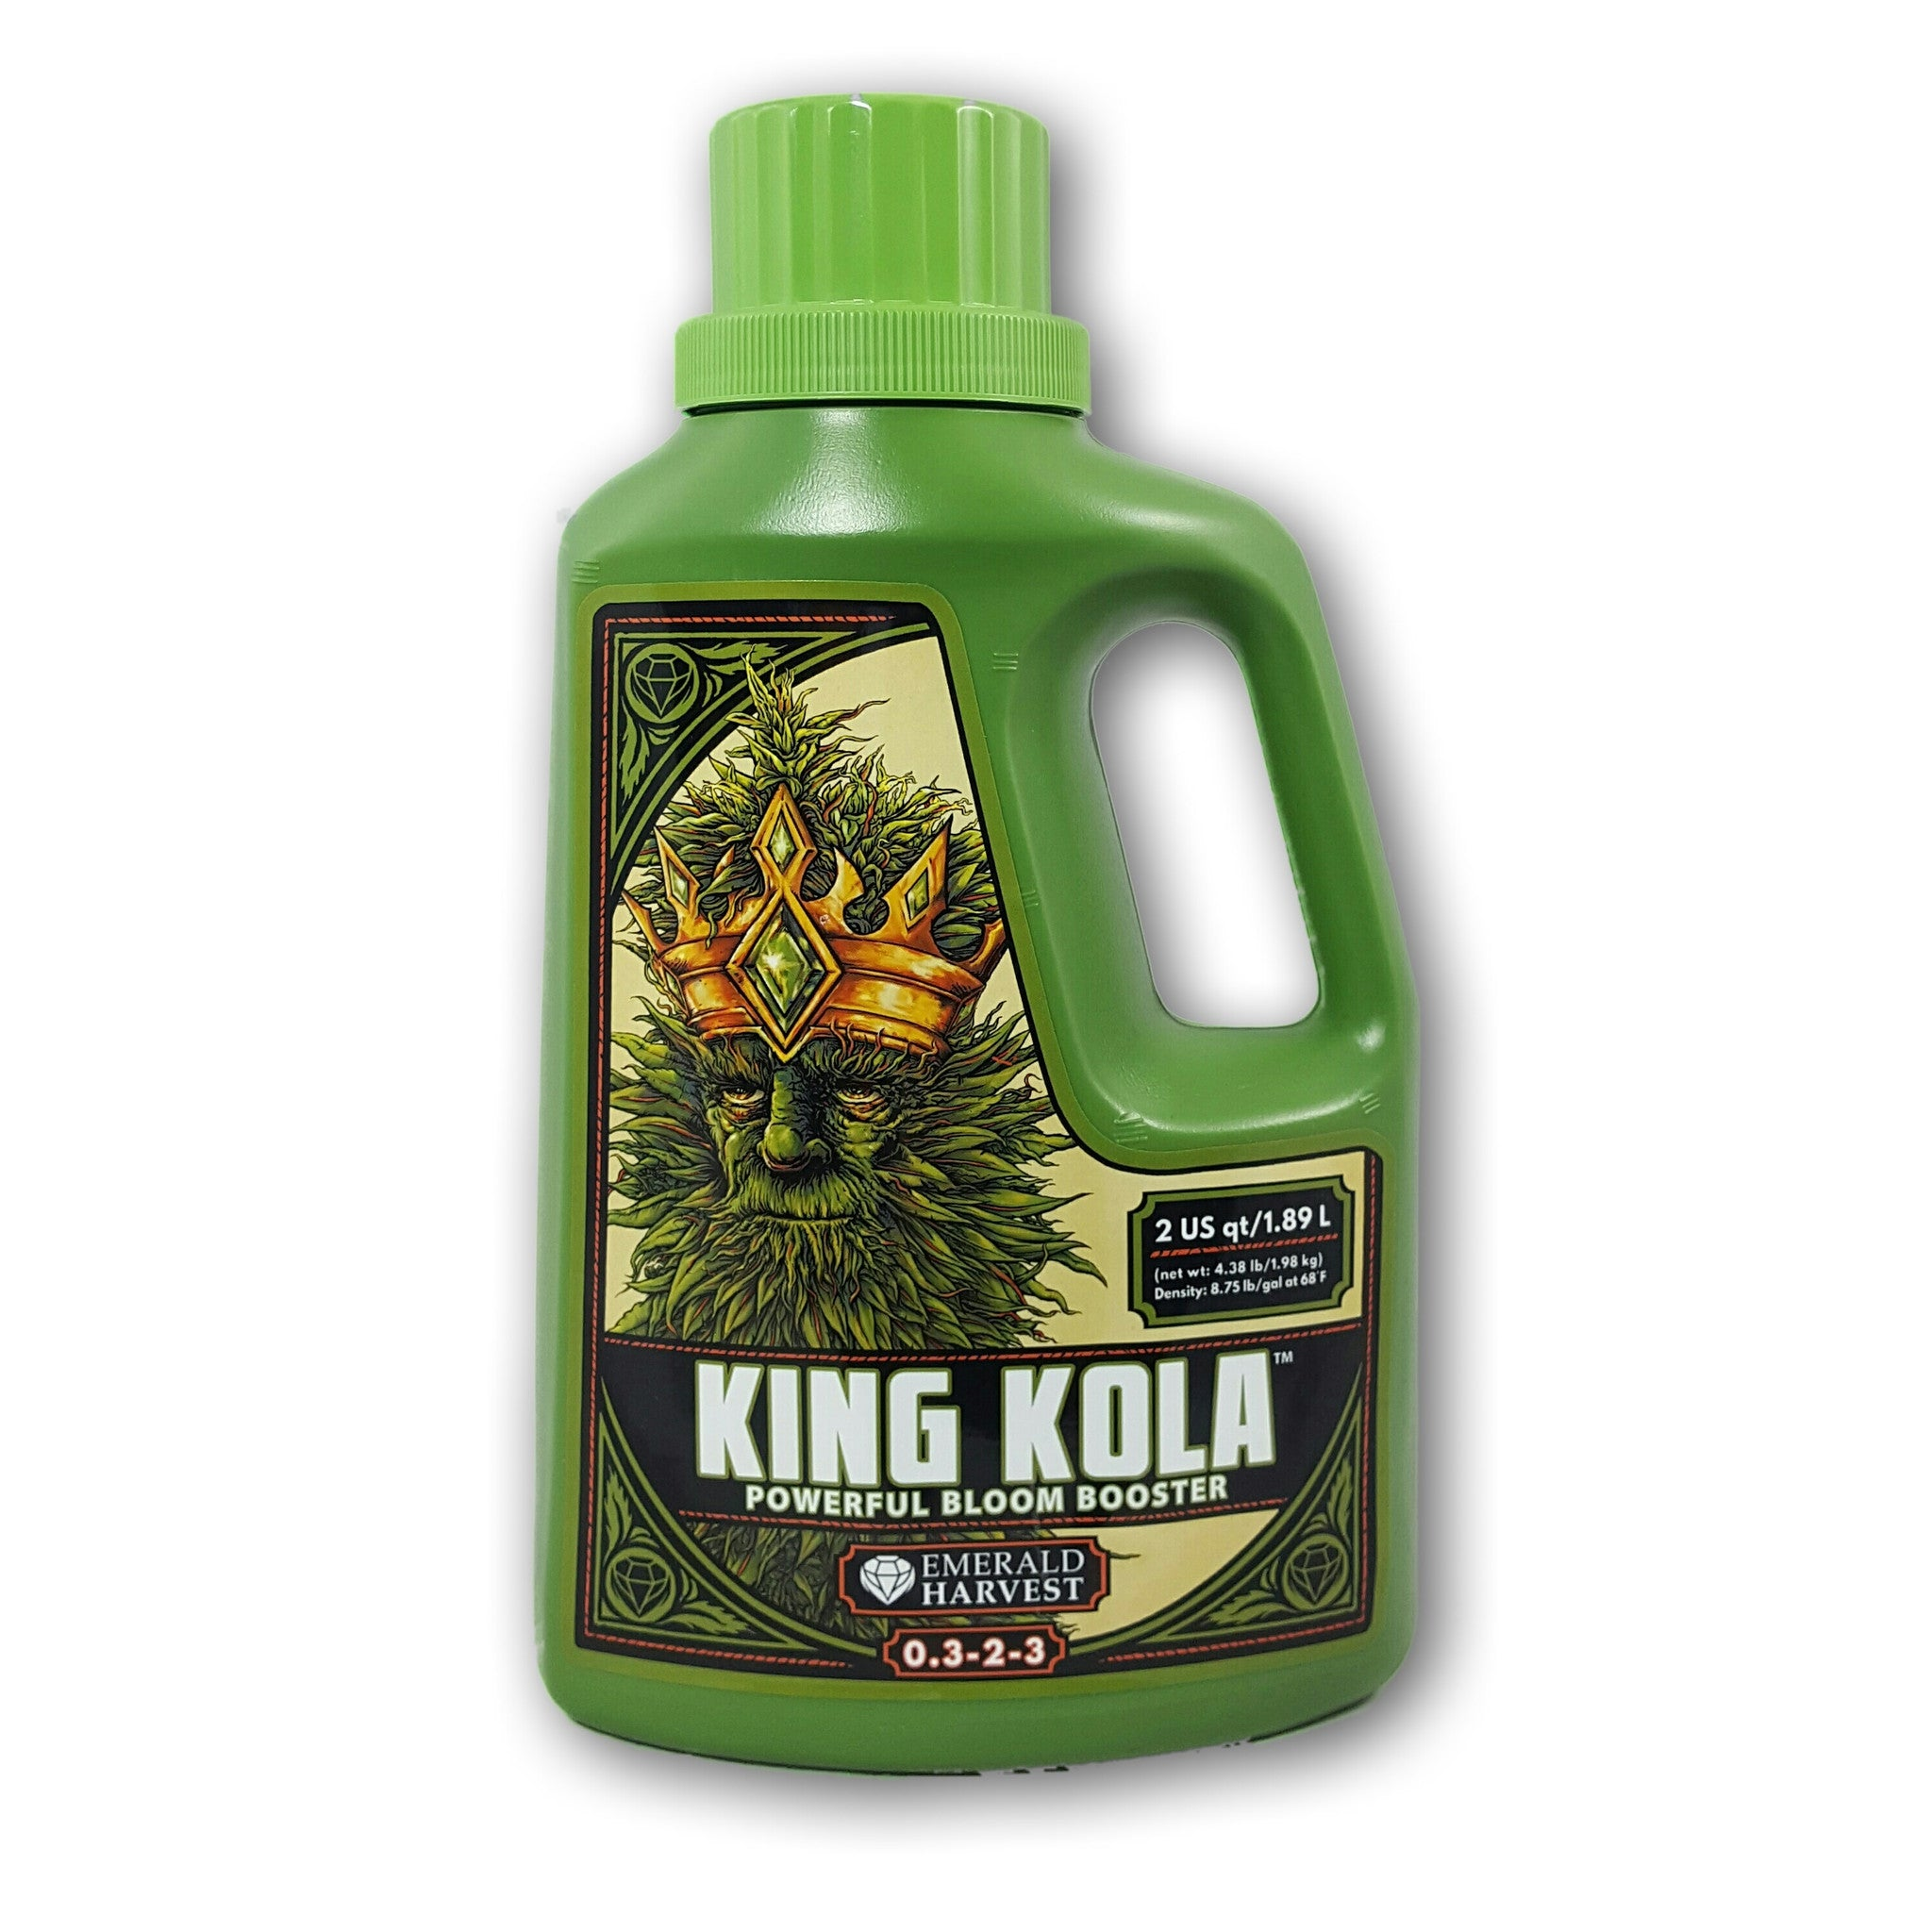 Emerald Harvest King Kola 2 Quart Front Label Emerald Harvest - Pacific Coast Hydroponics Los Angeles